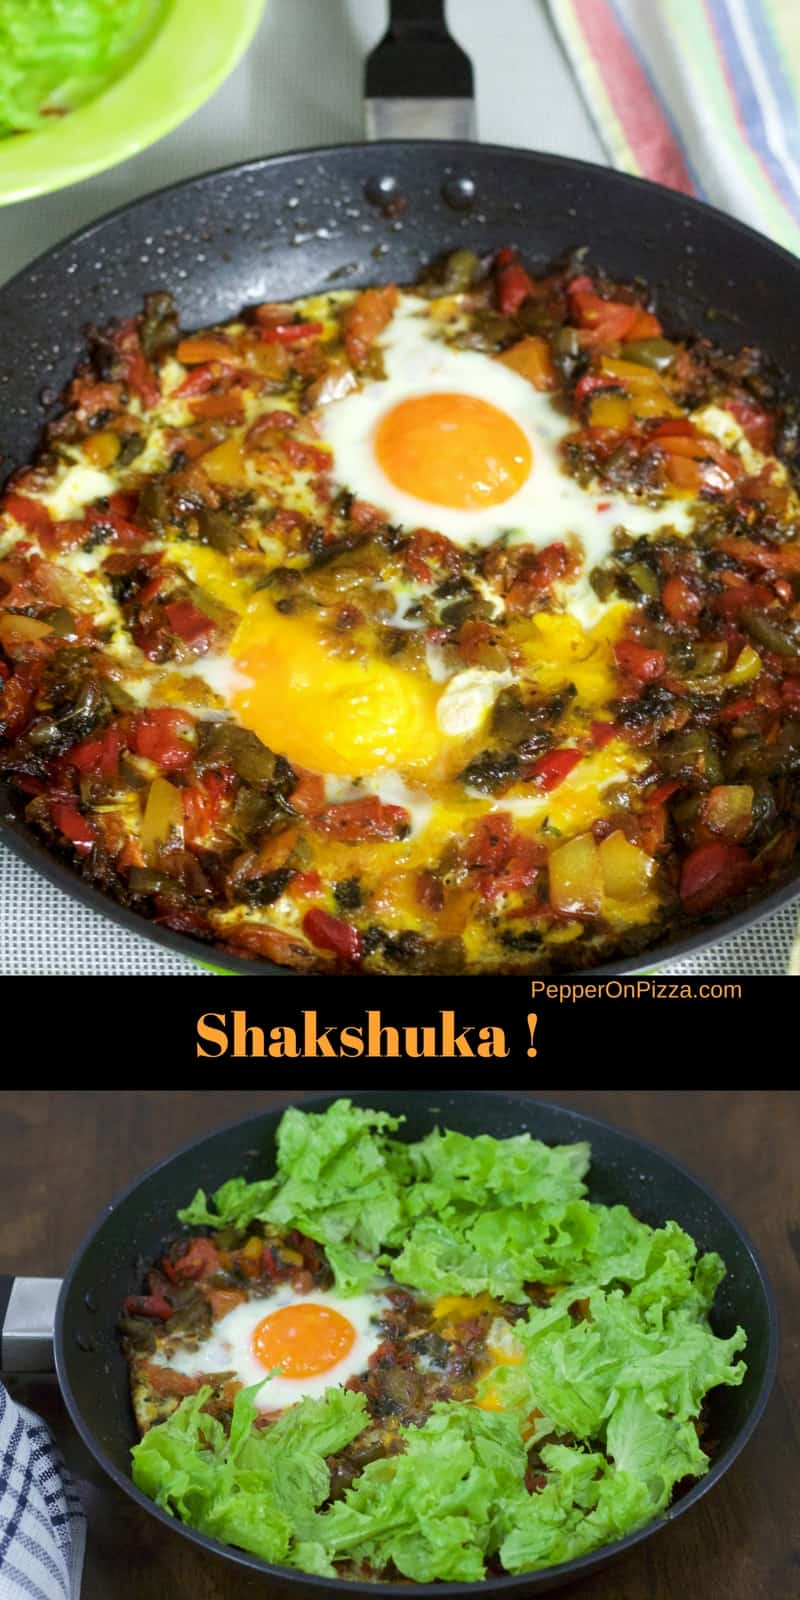 Shakshuka, a Tunisian dish Poached eggs in peppers, tomato, saffron, paprika & herbs which are integral to the dish from Ottolenghi's recipe